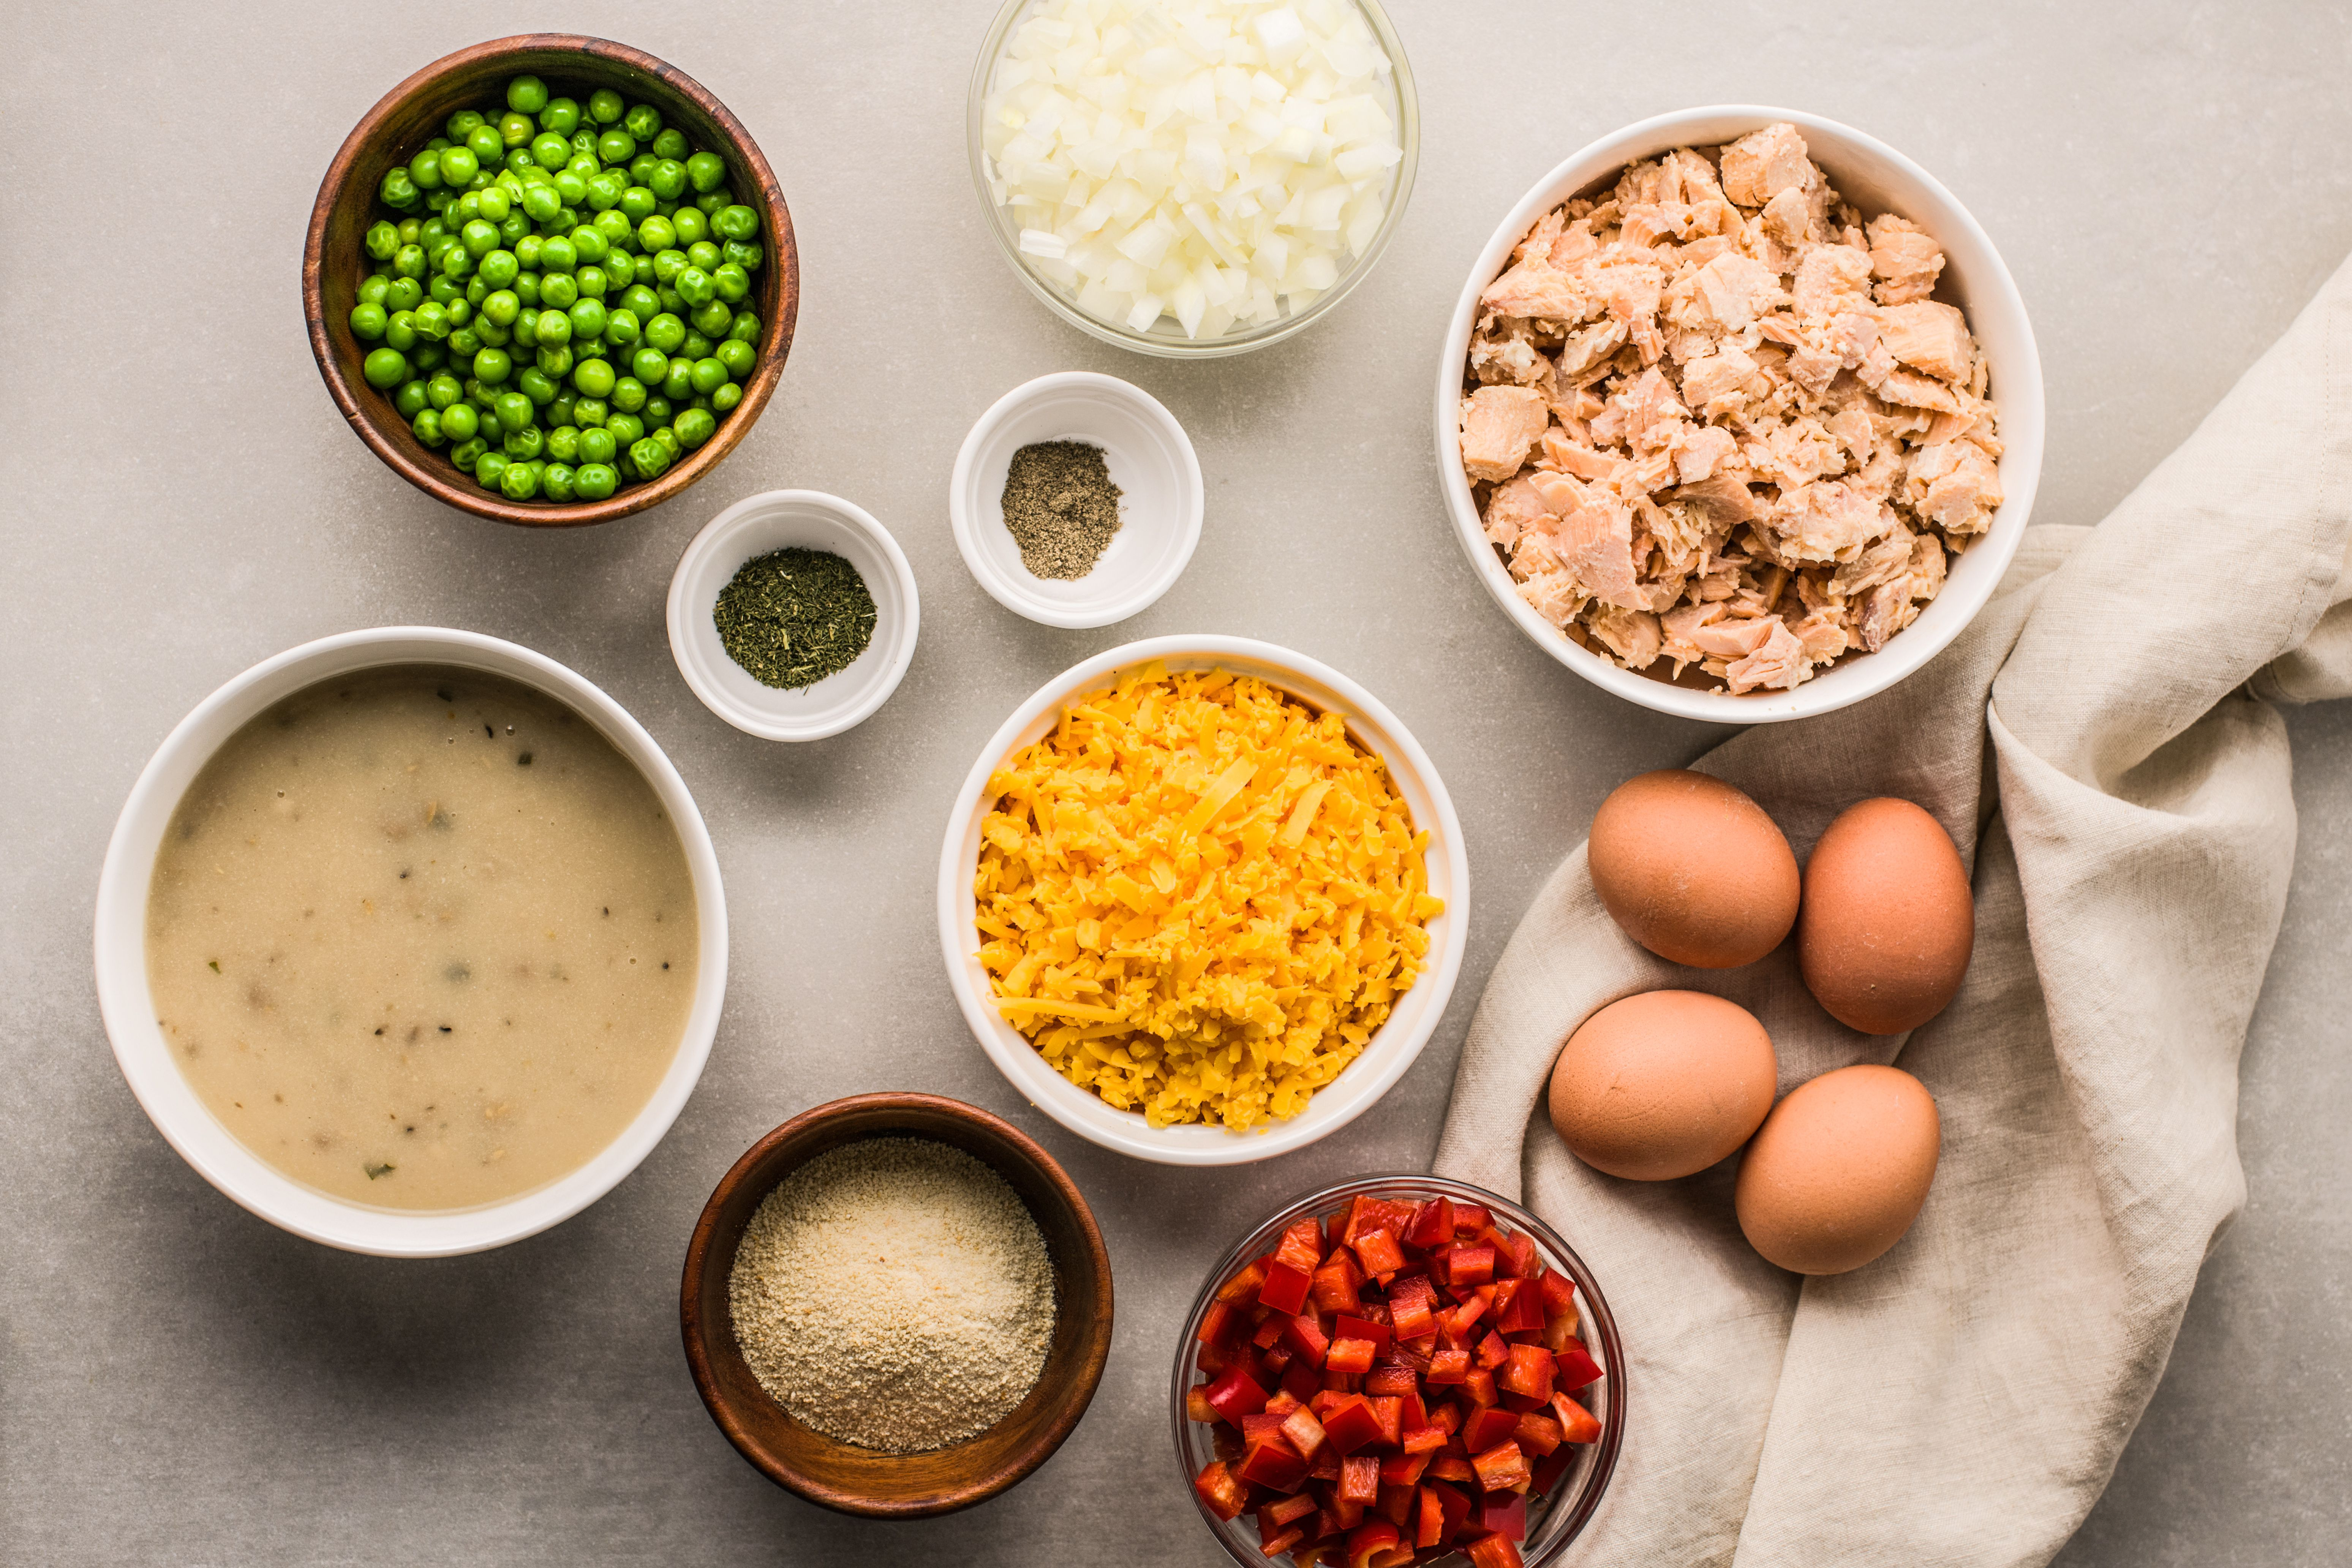 Ingredients for salmon casserole